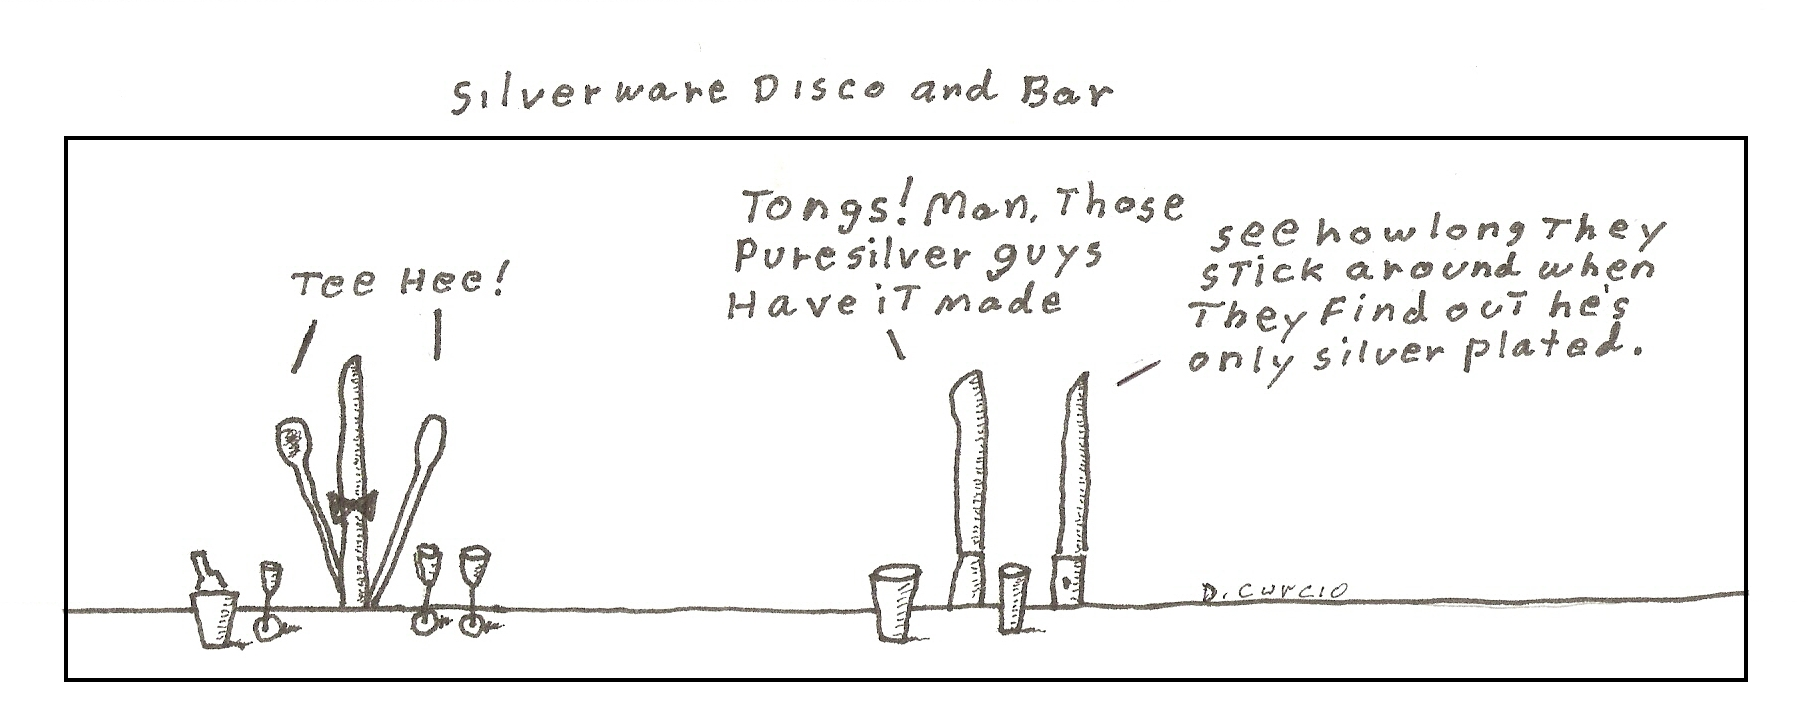 Silverware Disco And Bar 3